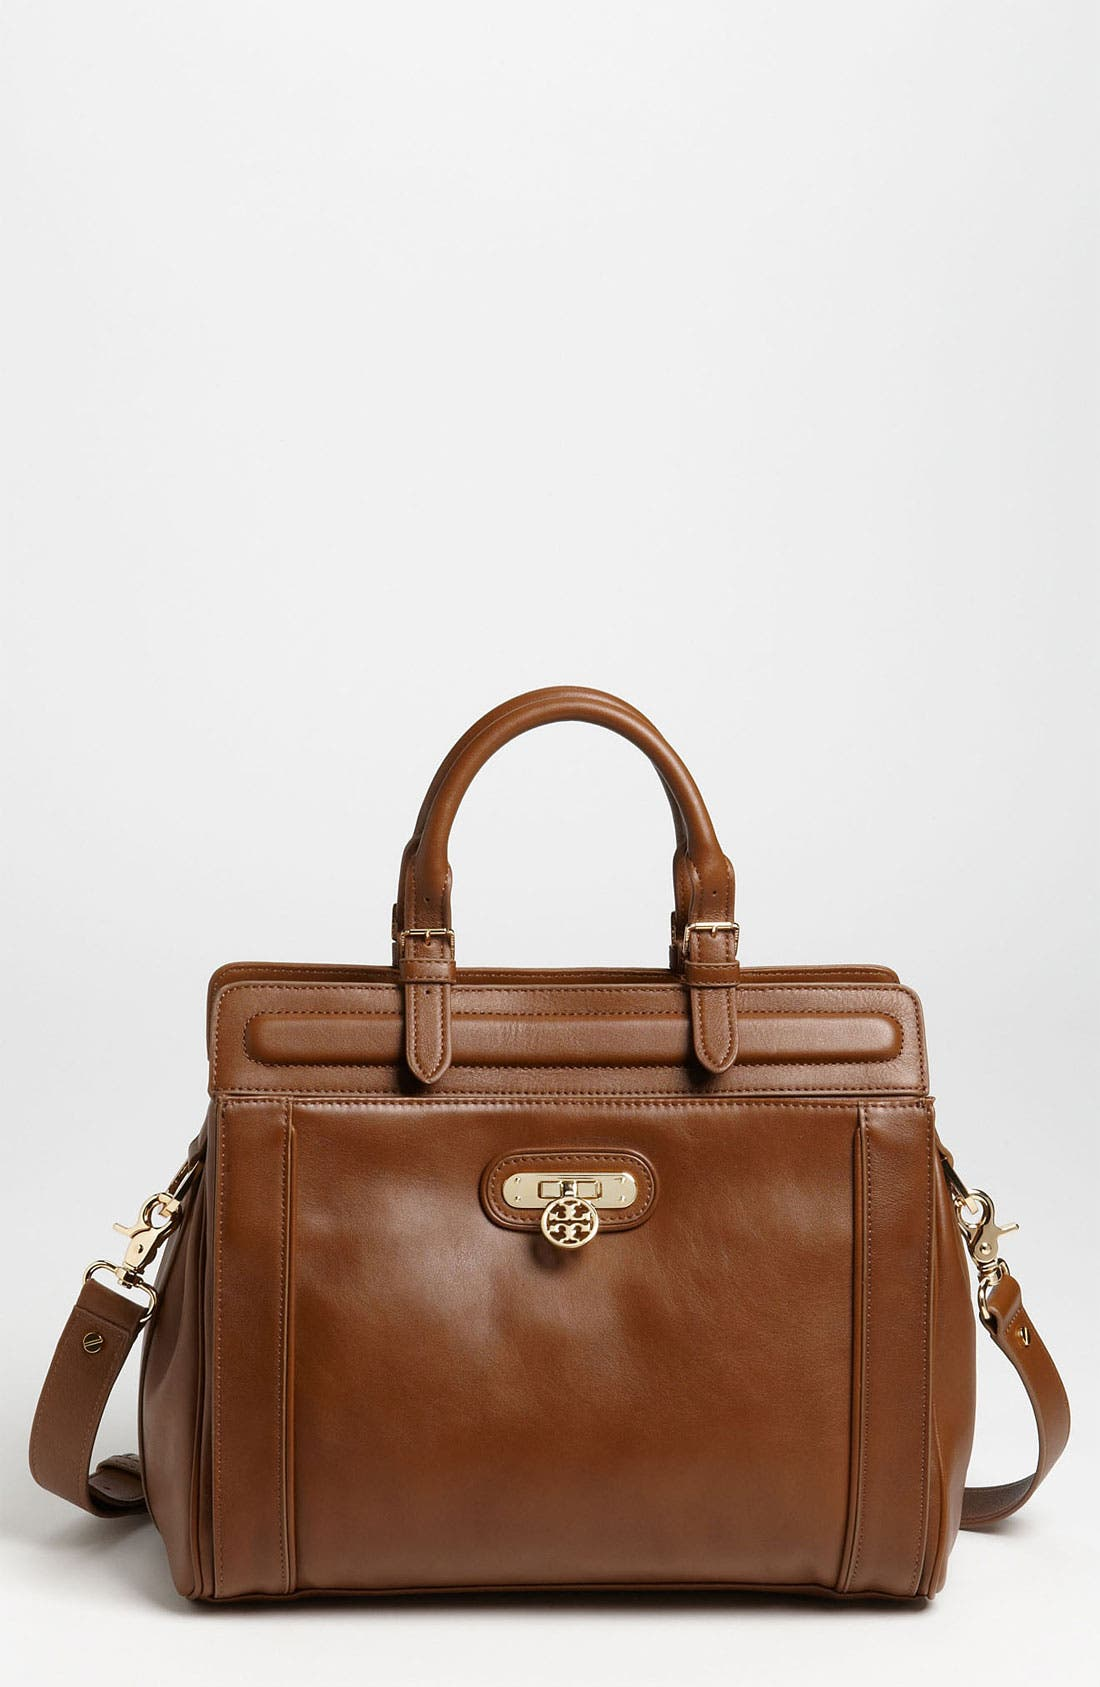 Alternate Image 1 Selected - Tory Burch 'Daria' Leather Satchel